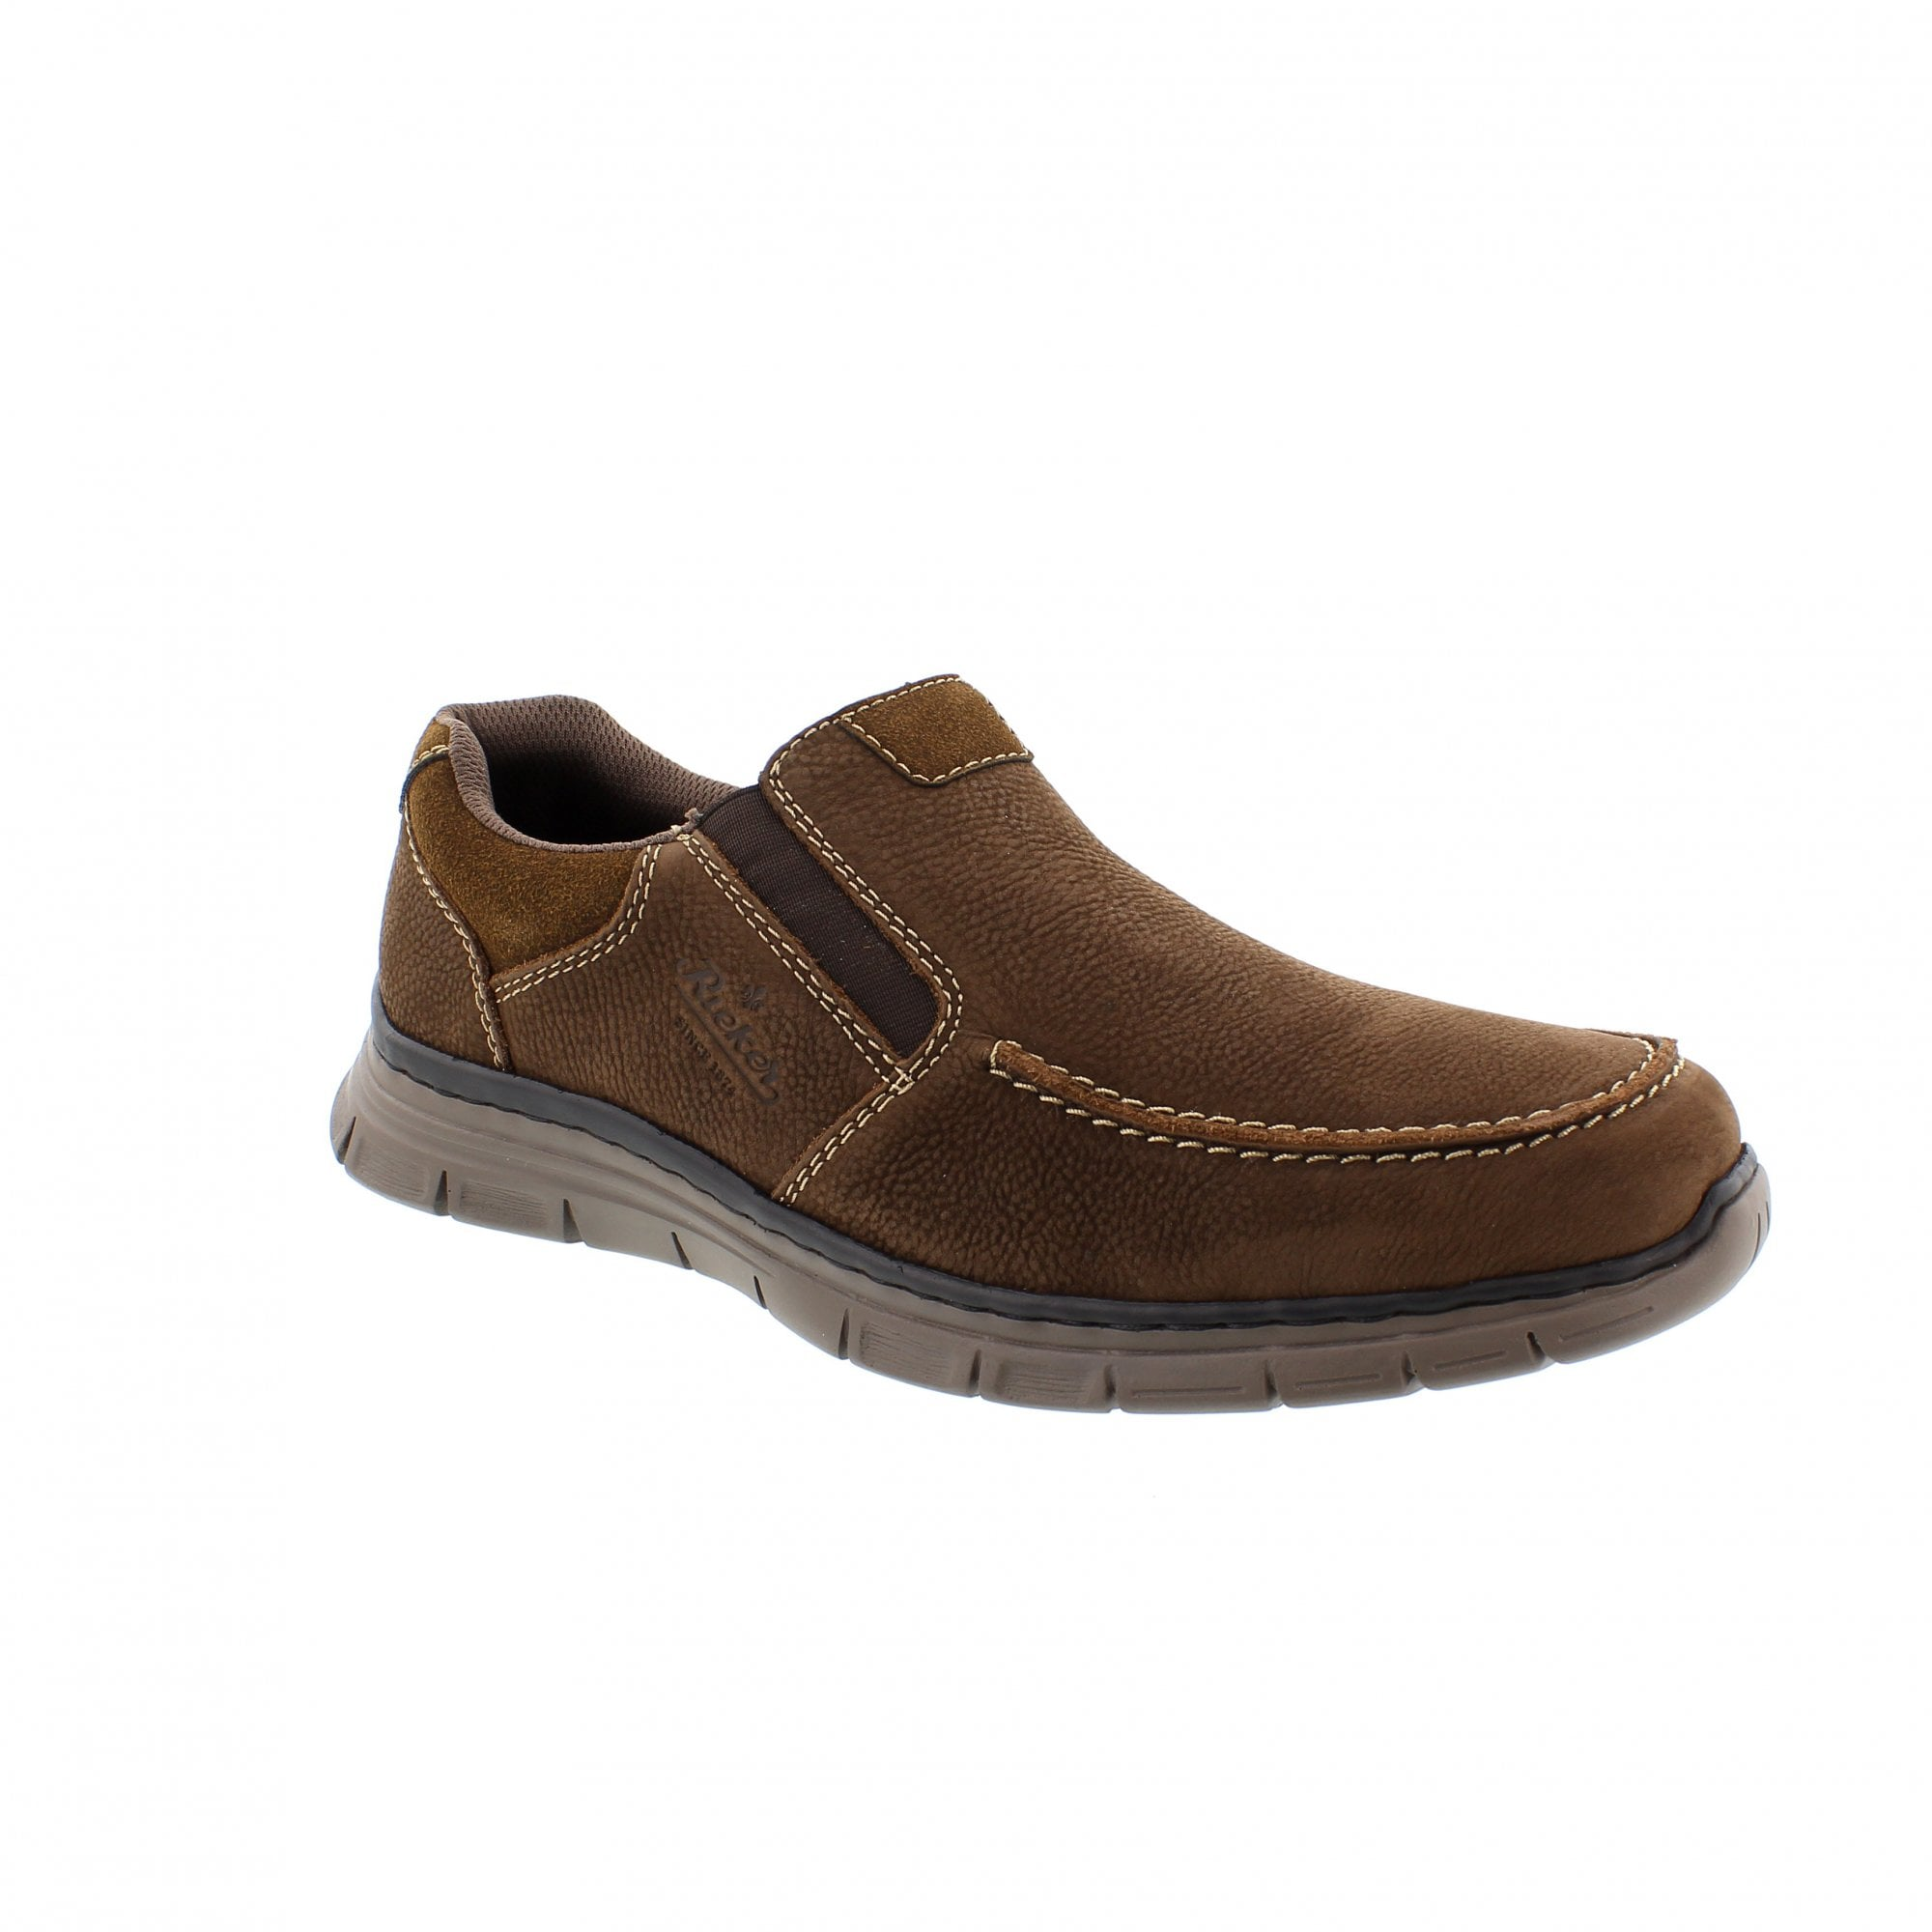 store best shoes autumn shoes Rieker B4869-25 Brown Leather Mens Slip On Shoes | Rogerson Shoes